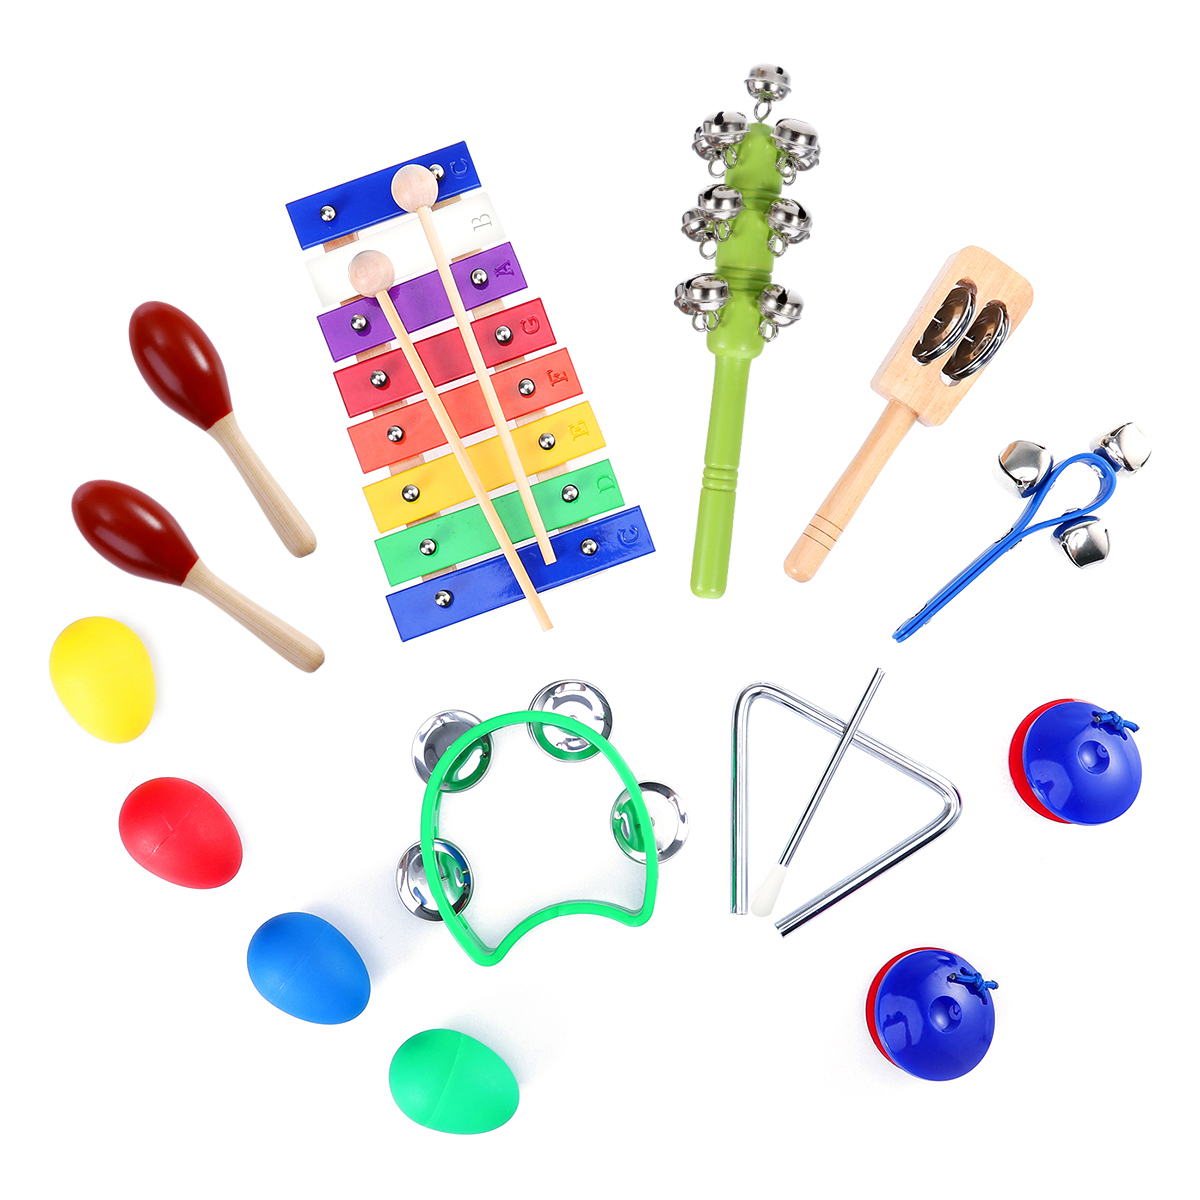 15pcs Kids Musical Instruments Percussion Toy Rhythm Band Set Preschool Educational Tools With Carrying Bag Top Watermelons red Sand Hammer